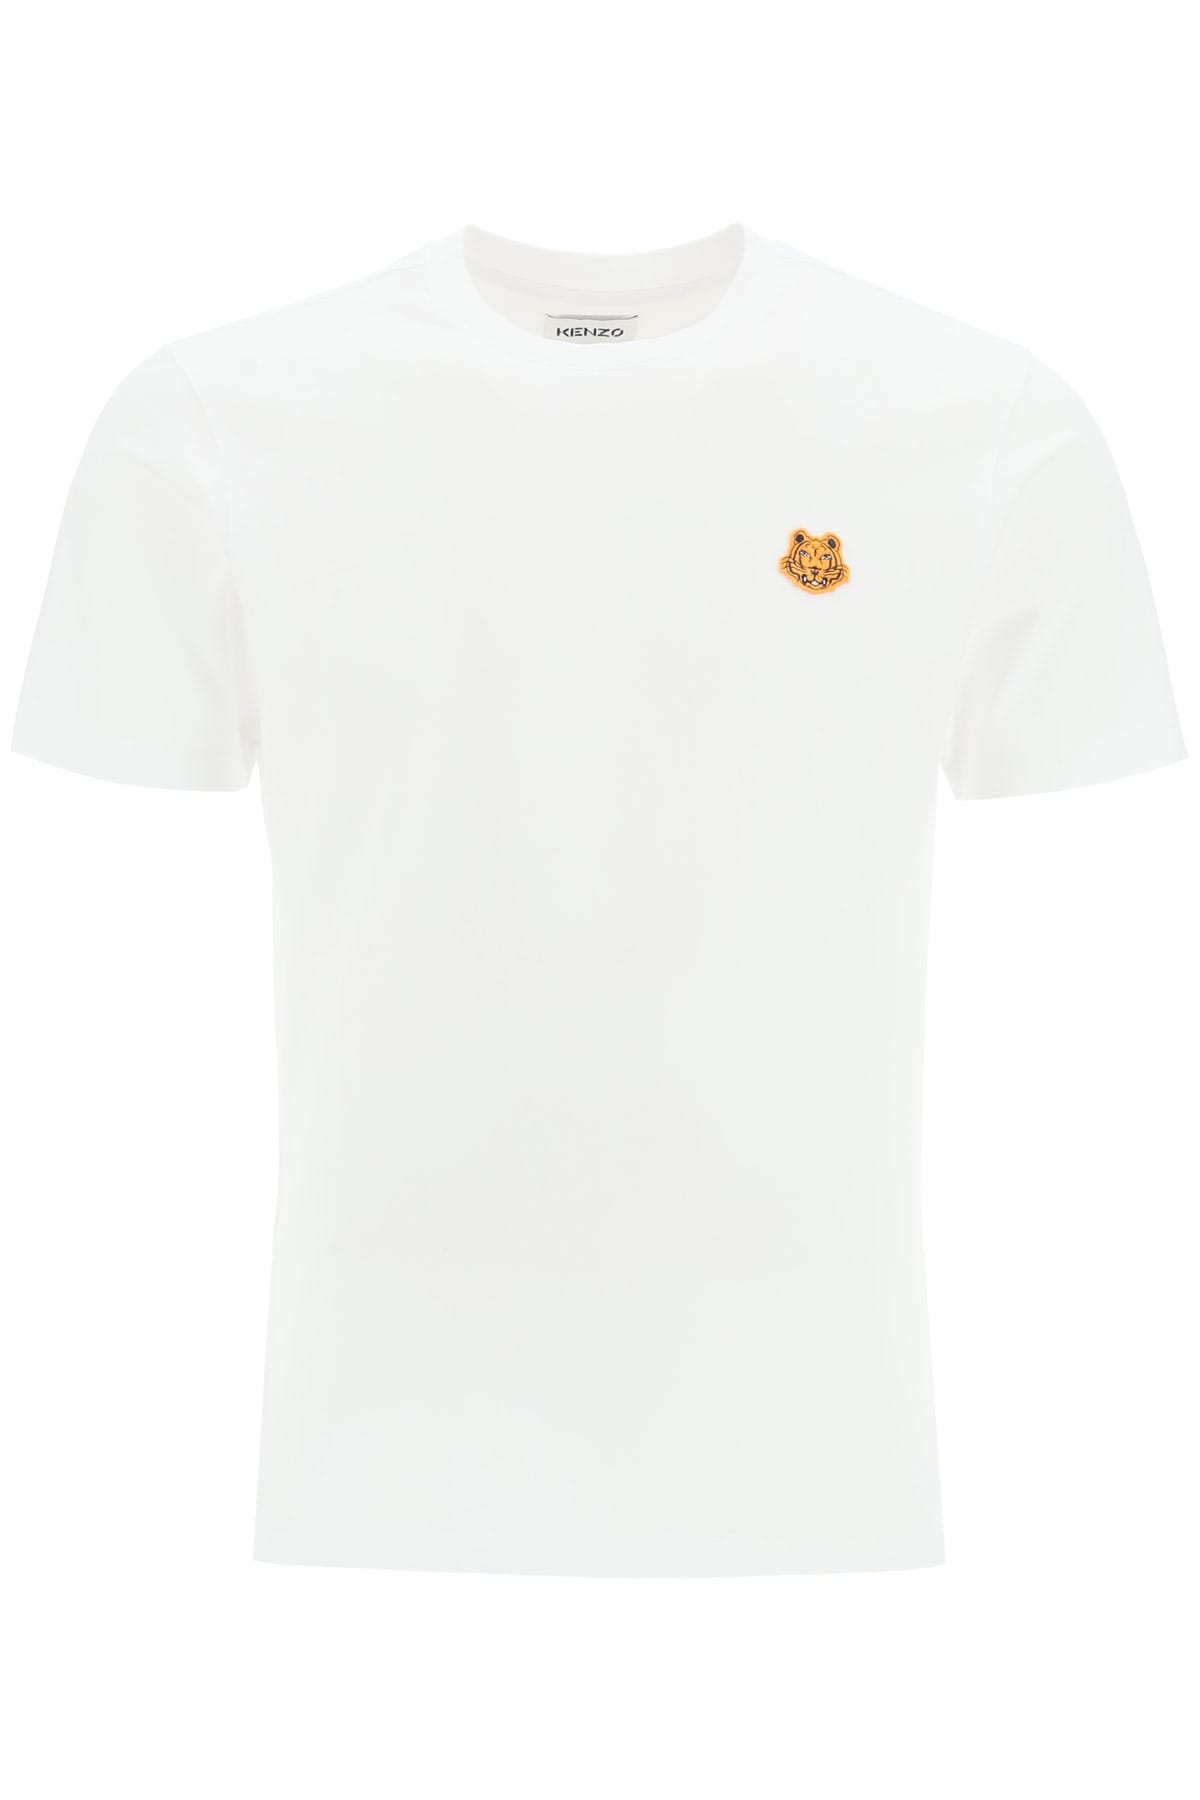 Kenzo T-SHIRT WITH TIGER PATCH